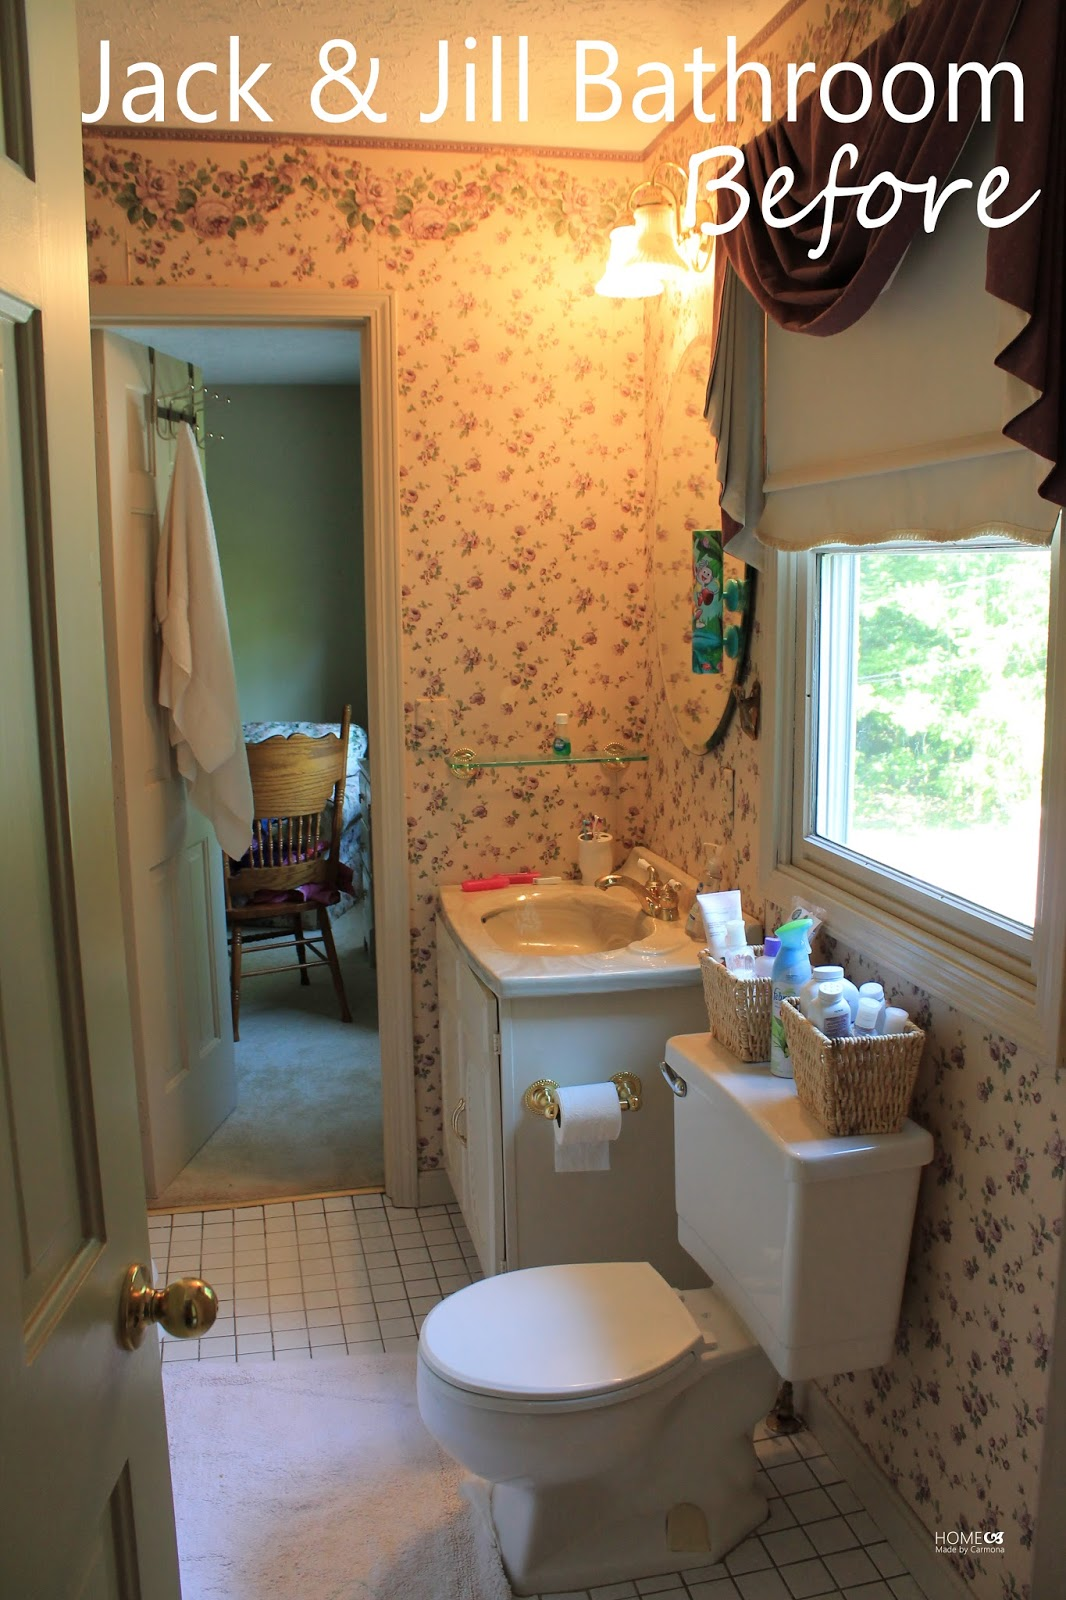 Jack jill bathroom reveal home made by carmona - What is a jack and jill bath ...